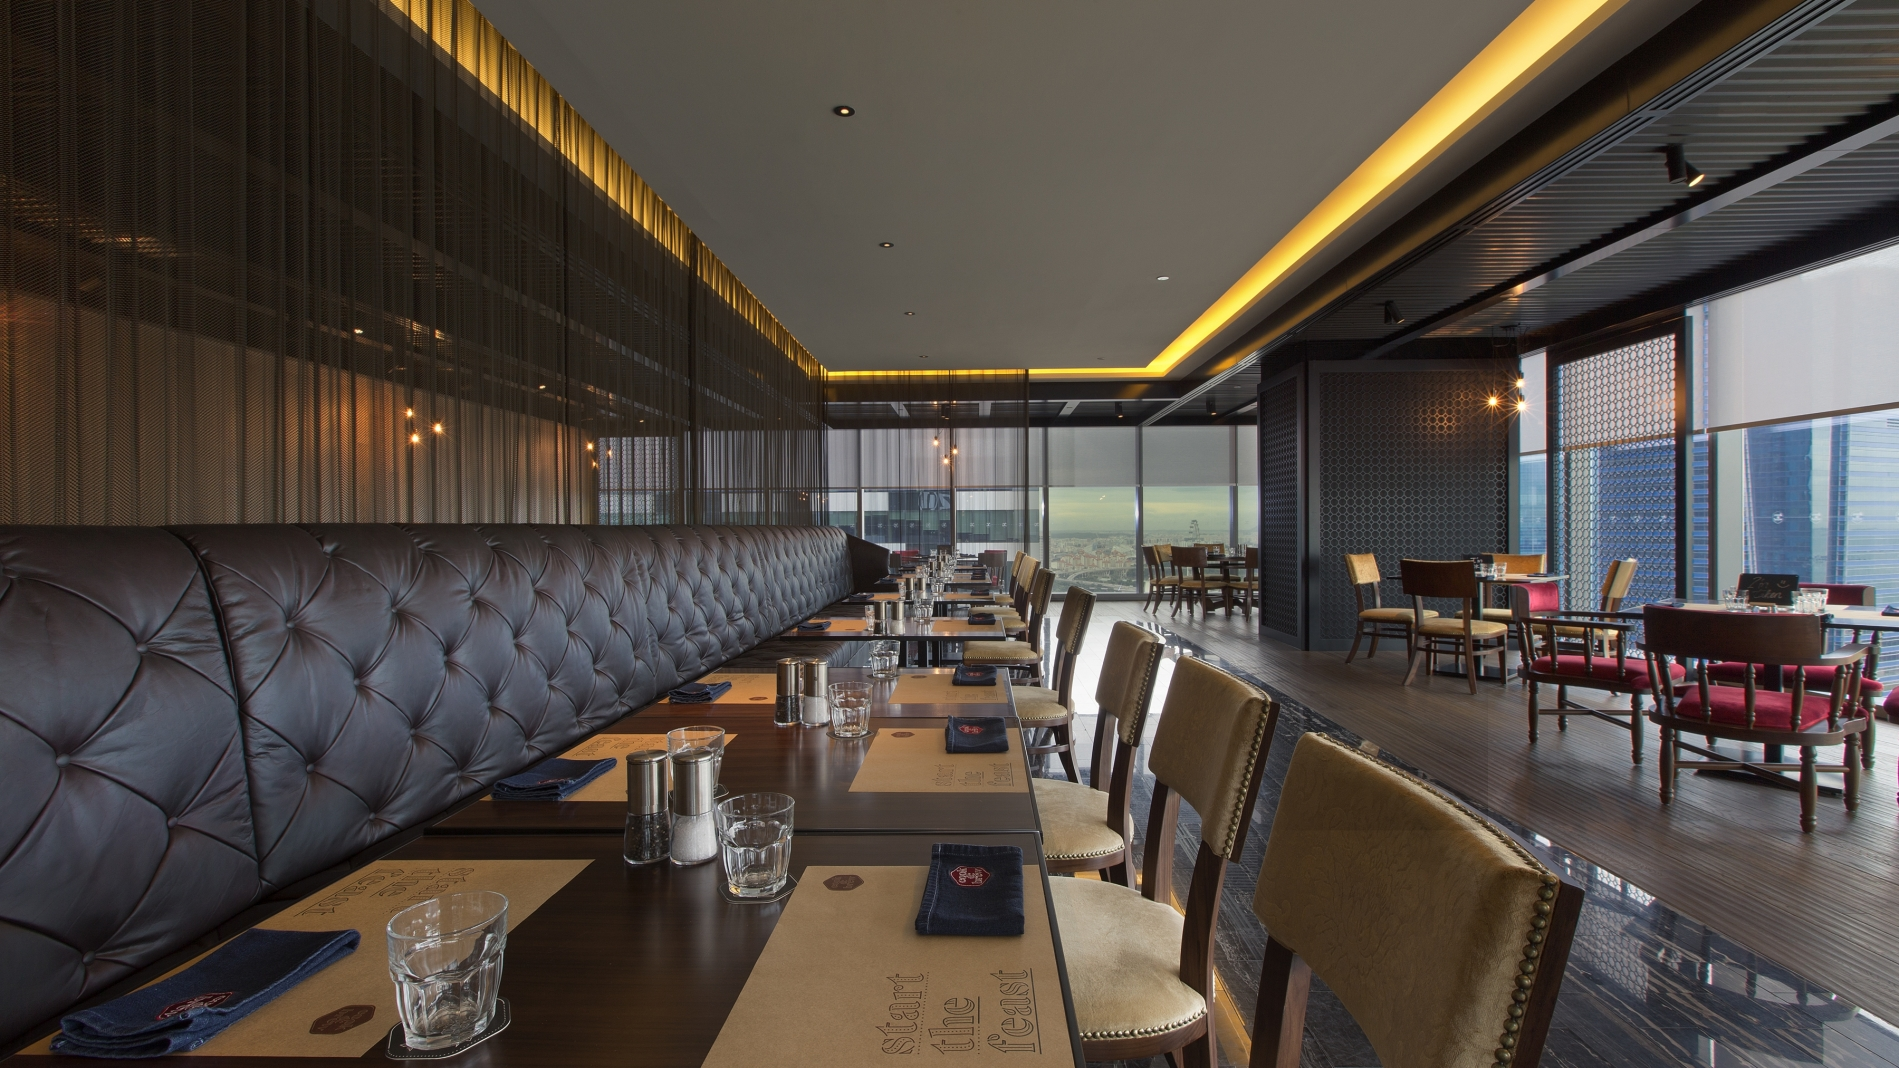 Hotel Bars Singapore | Cook \u0026 Brew at The Westin Singapore | Gastrobar